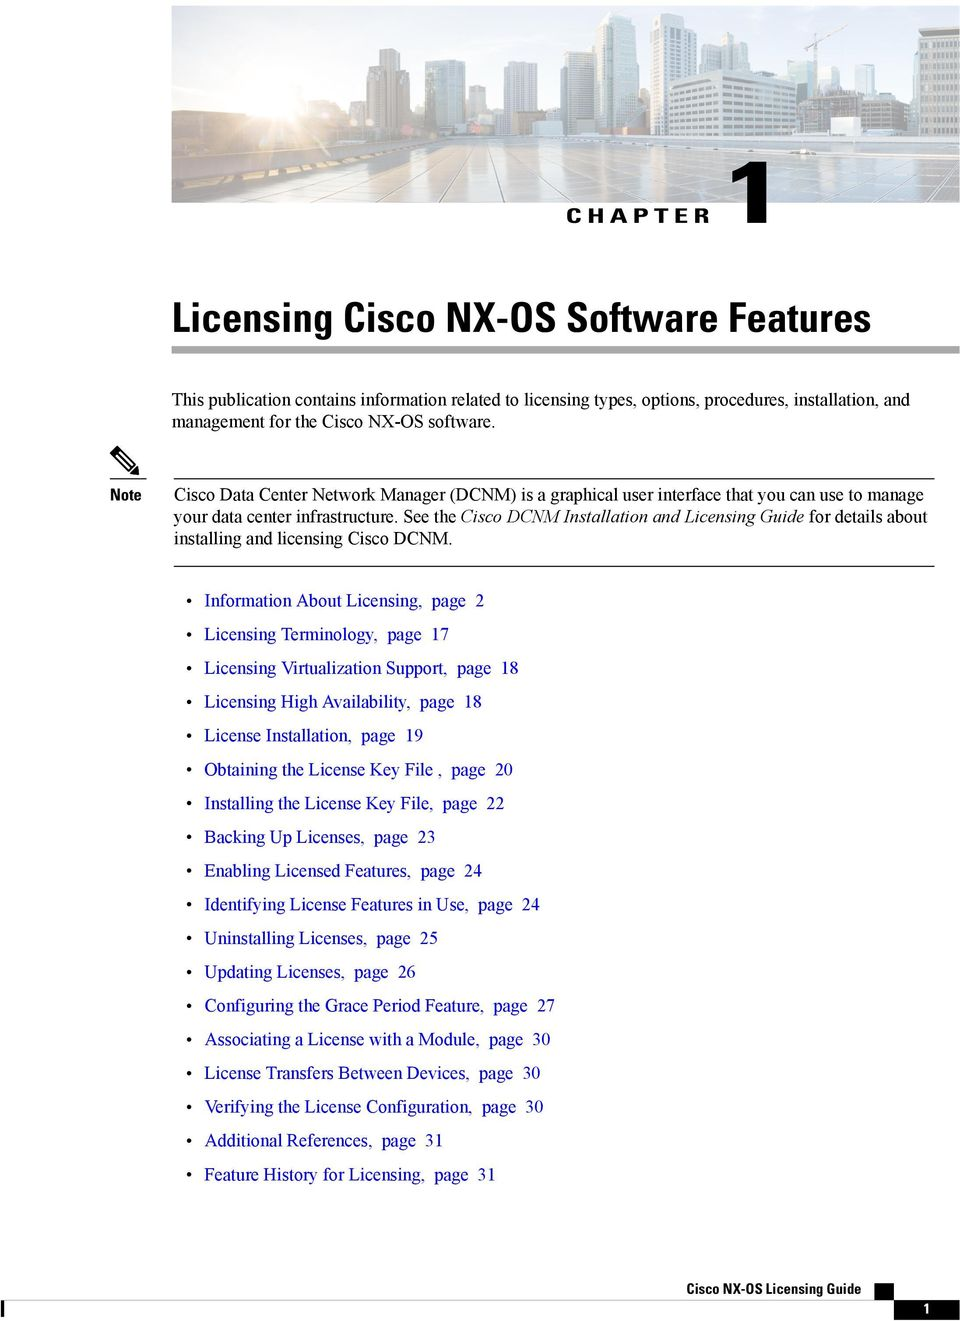 See the Cisco DCNM Installation and Licensing Guide for details about installing and licensing Cisco DCNM.